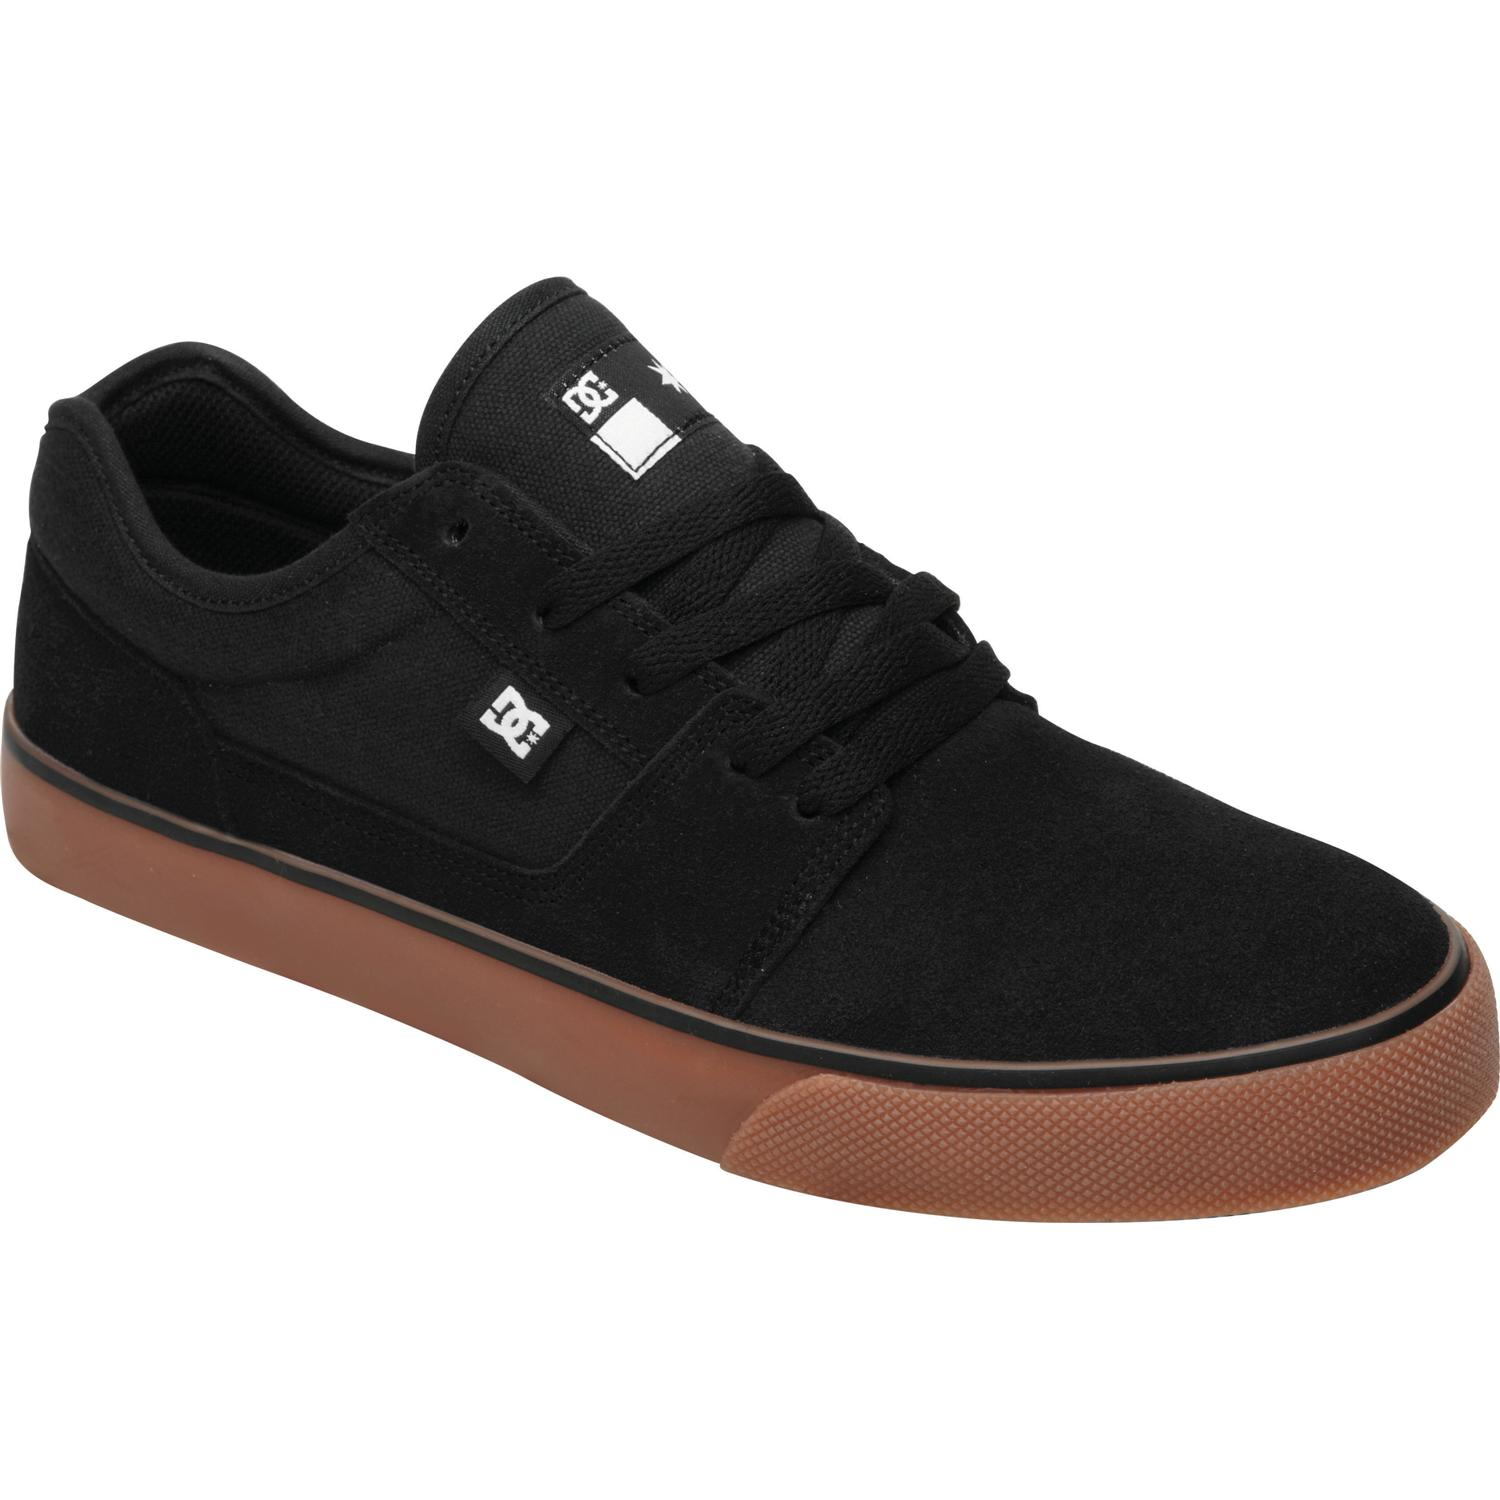 Womens Dc Shoes Size